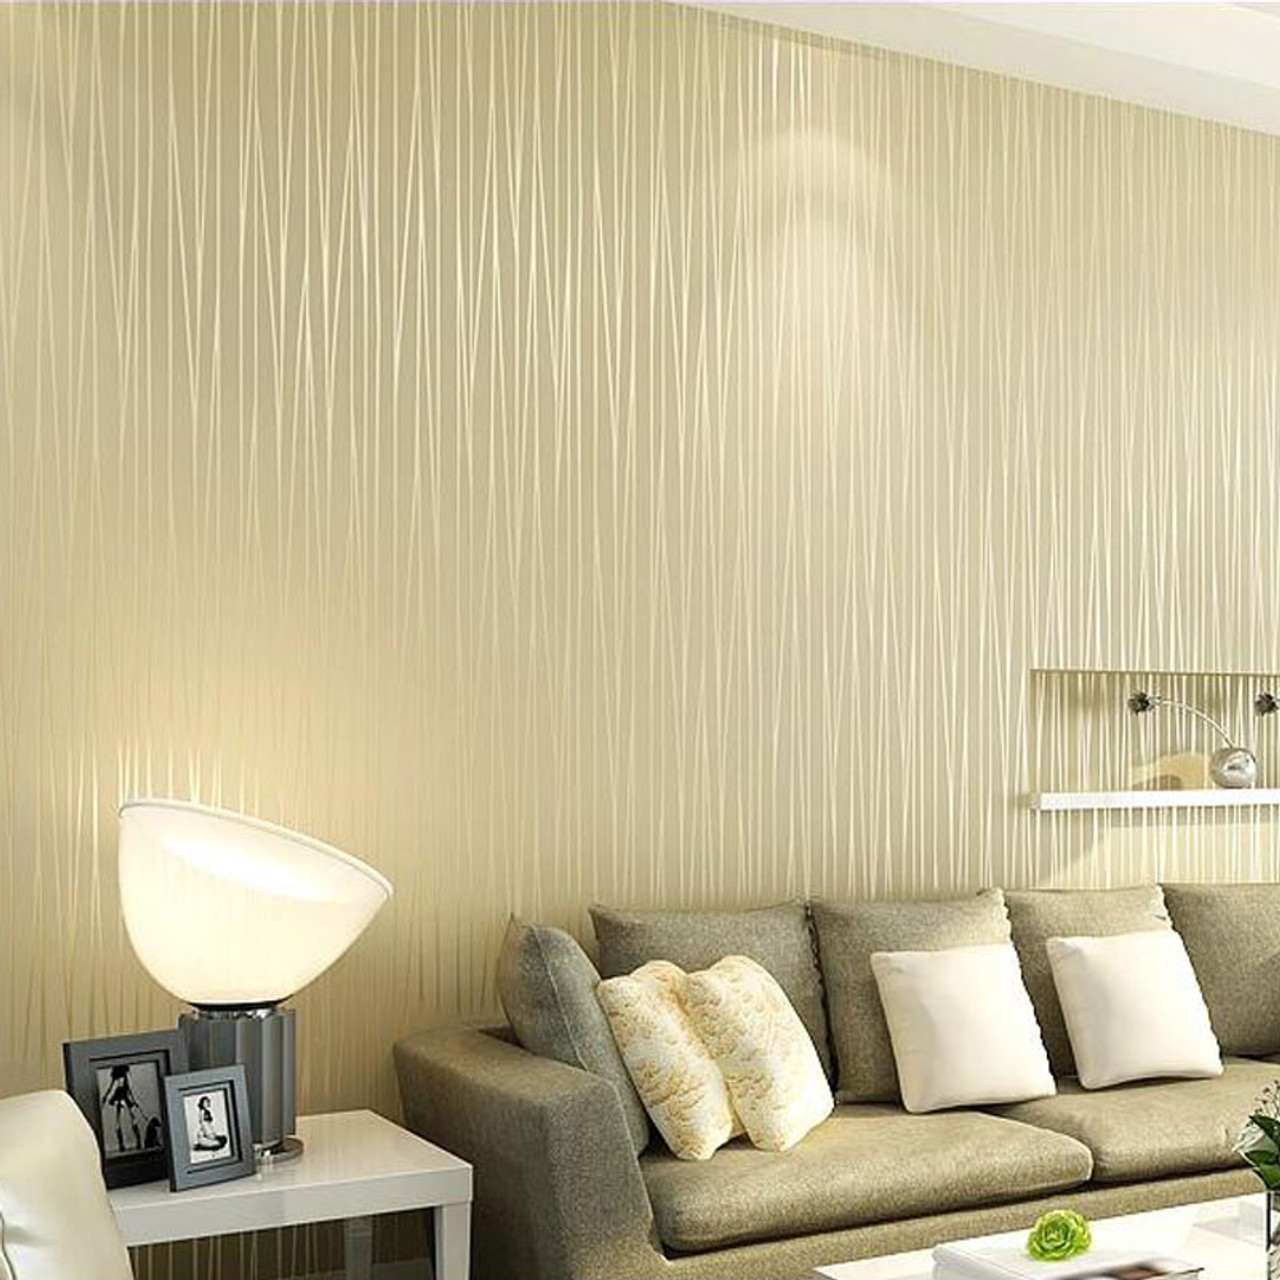 Non Woven Wallpaper Modern Solid Color Vertical Striped Wallpaper Roll Bedroom Living Room Tv Backdrop Wall Papers Home Decor Onshopdeals Com